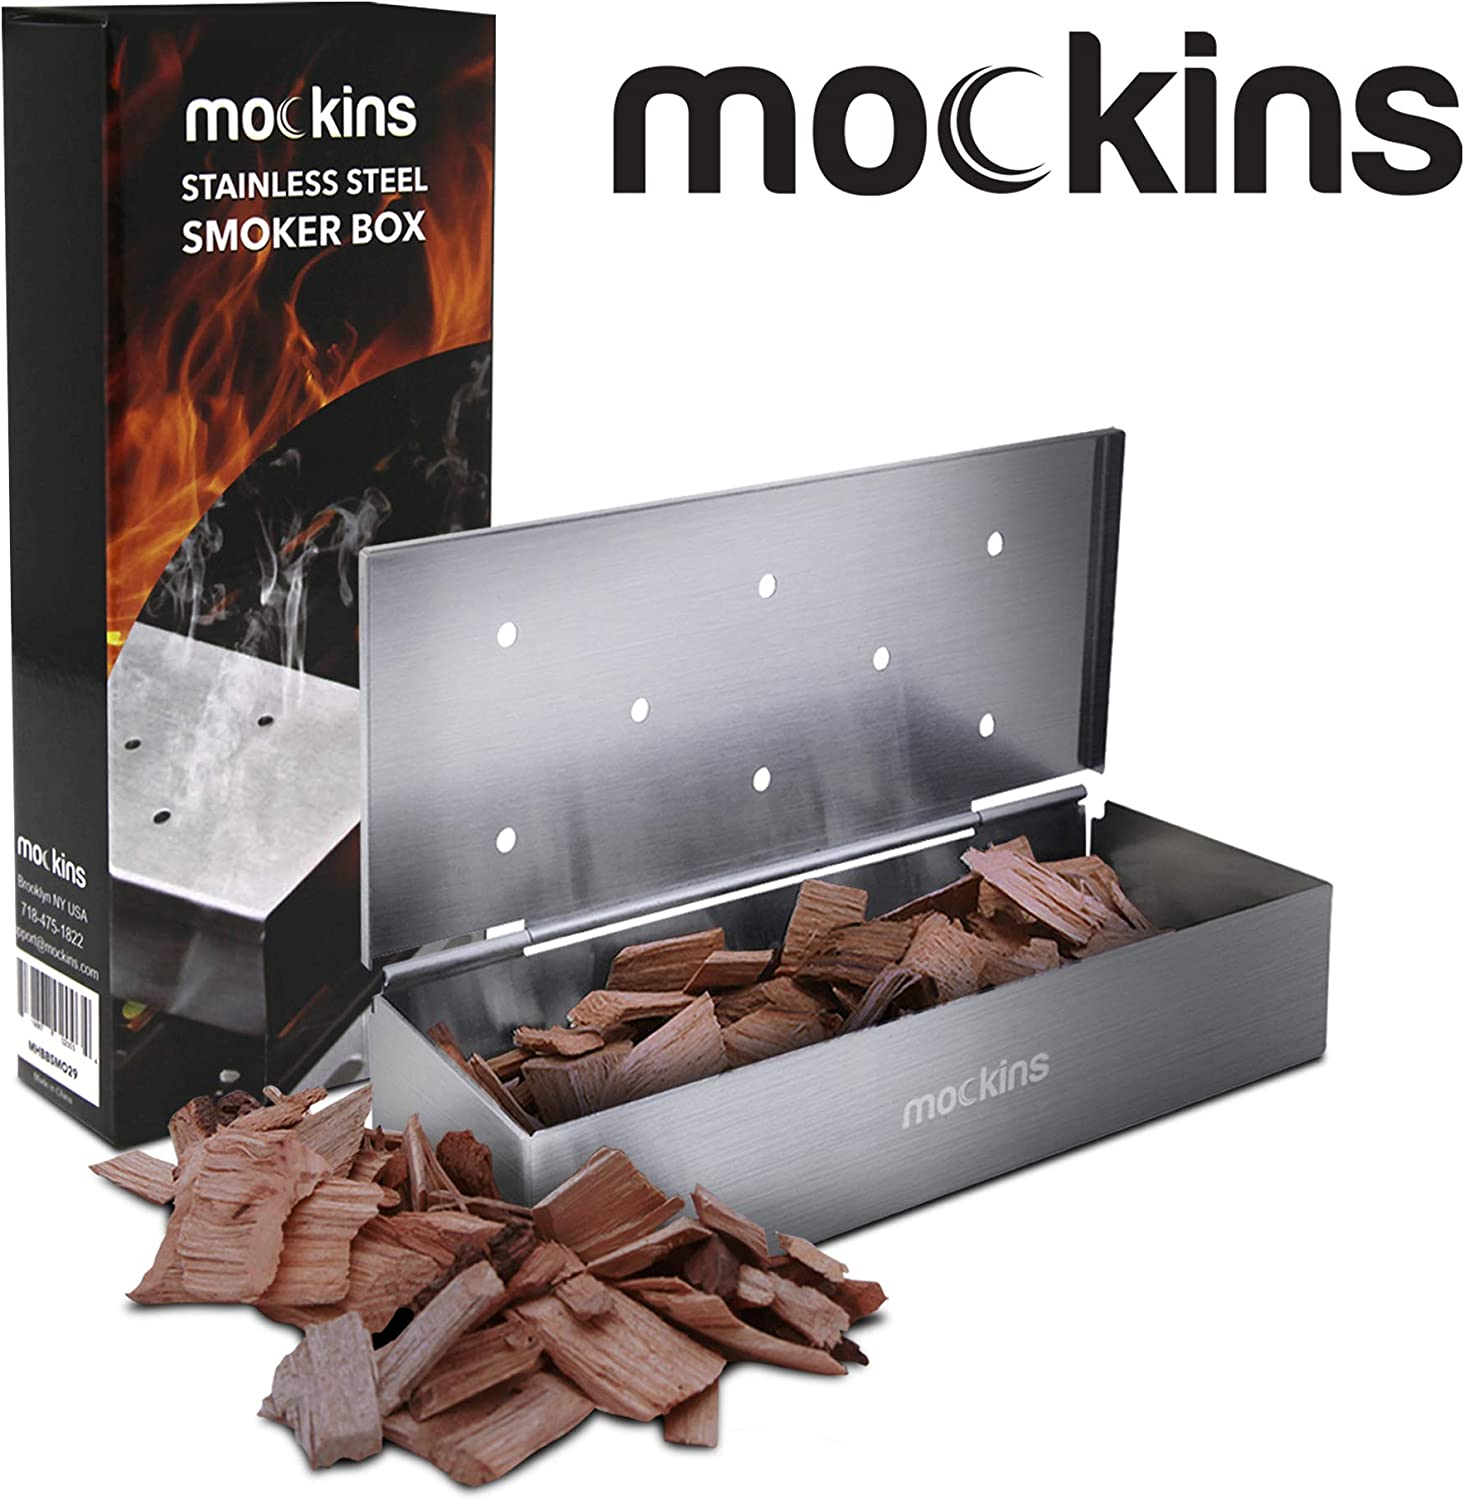 Mockins Stainless Steel BBQ Smoker Box for Grilling Barbecue Wood Chips On Gas Grill or Charcoal Grill - Grilling Accessories: Garden & Outdoor